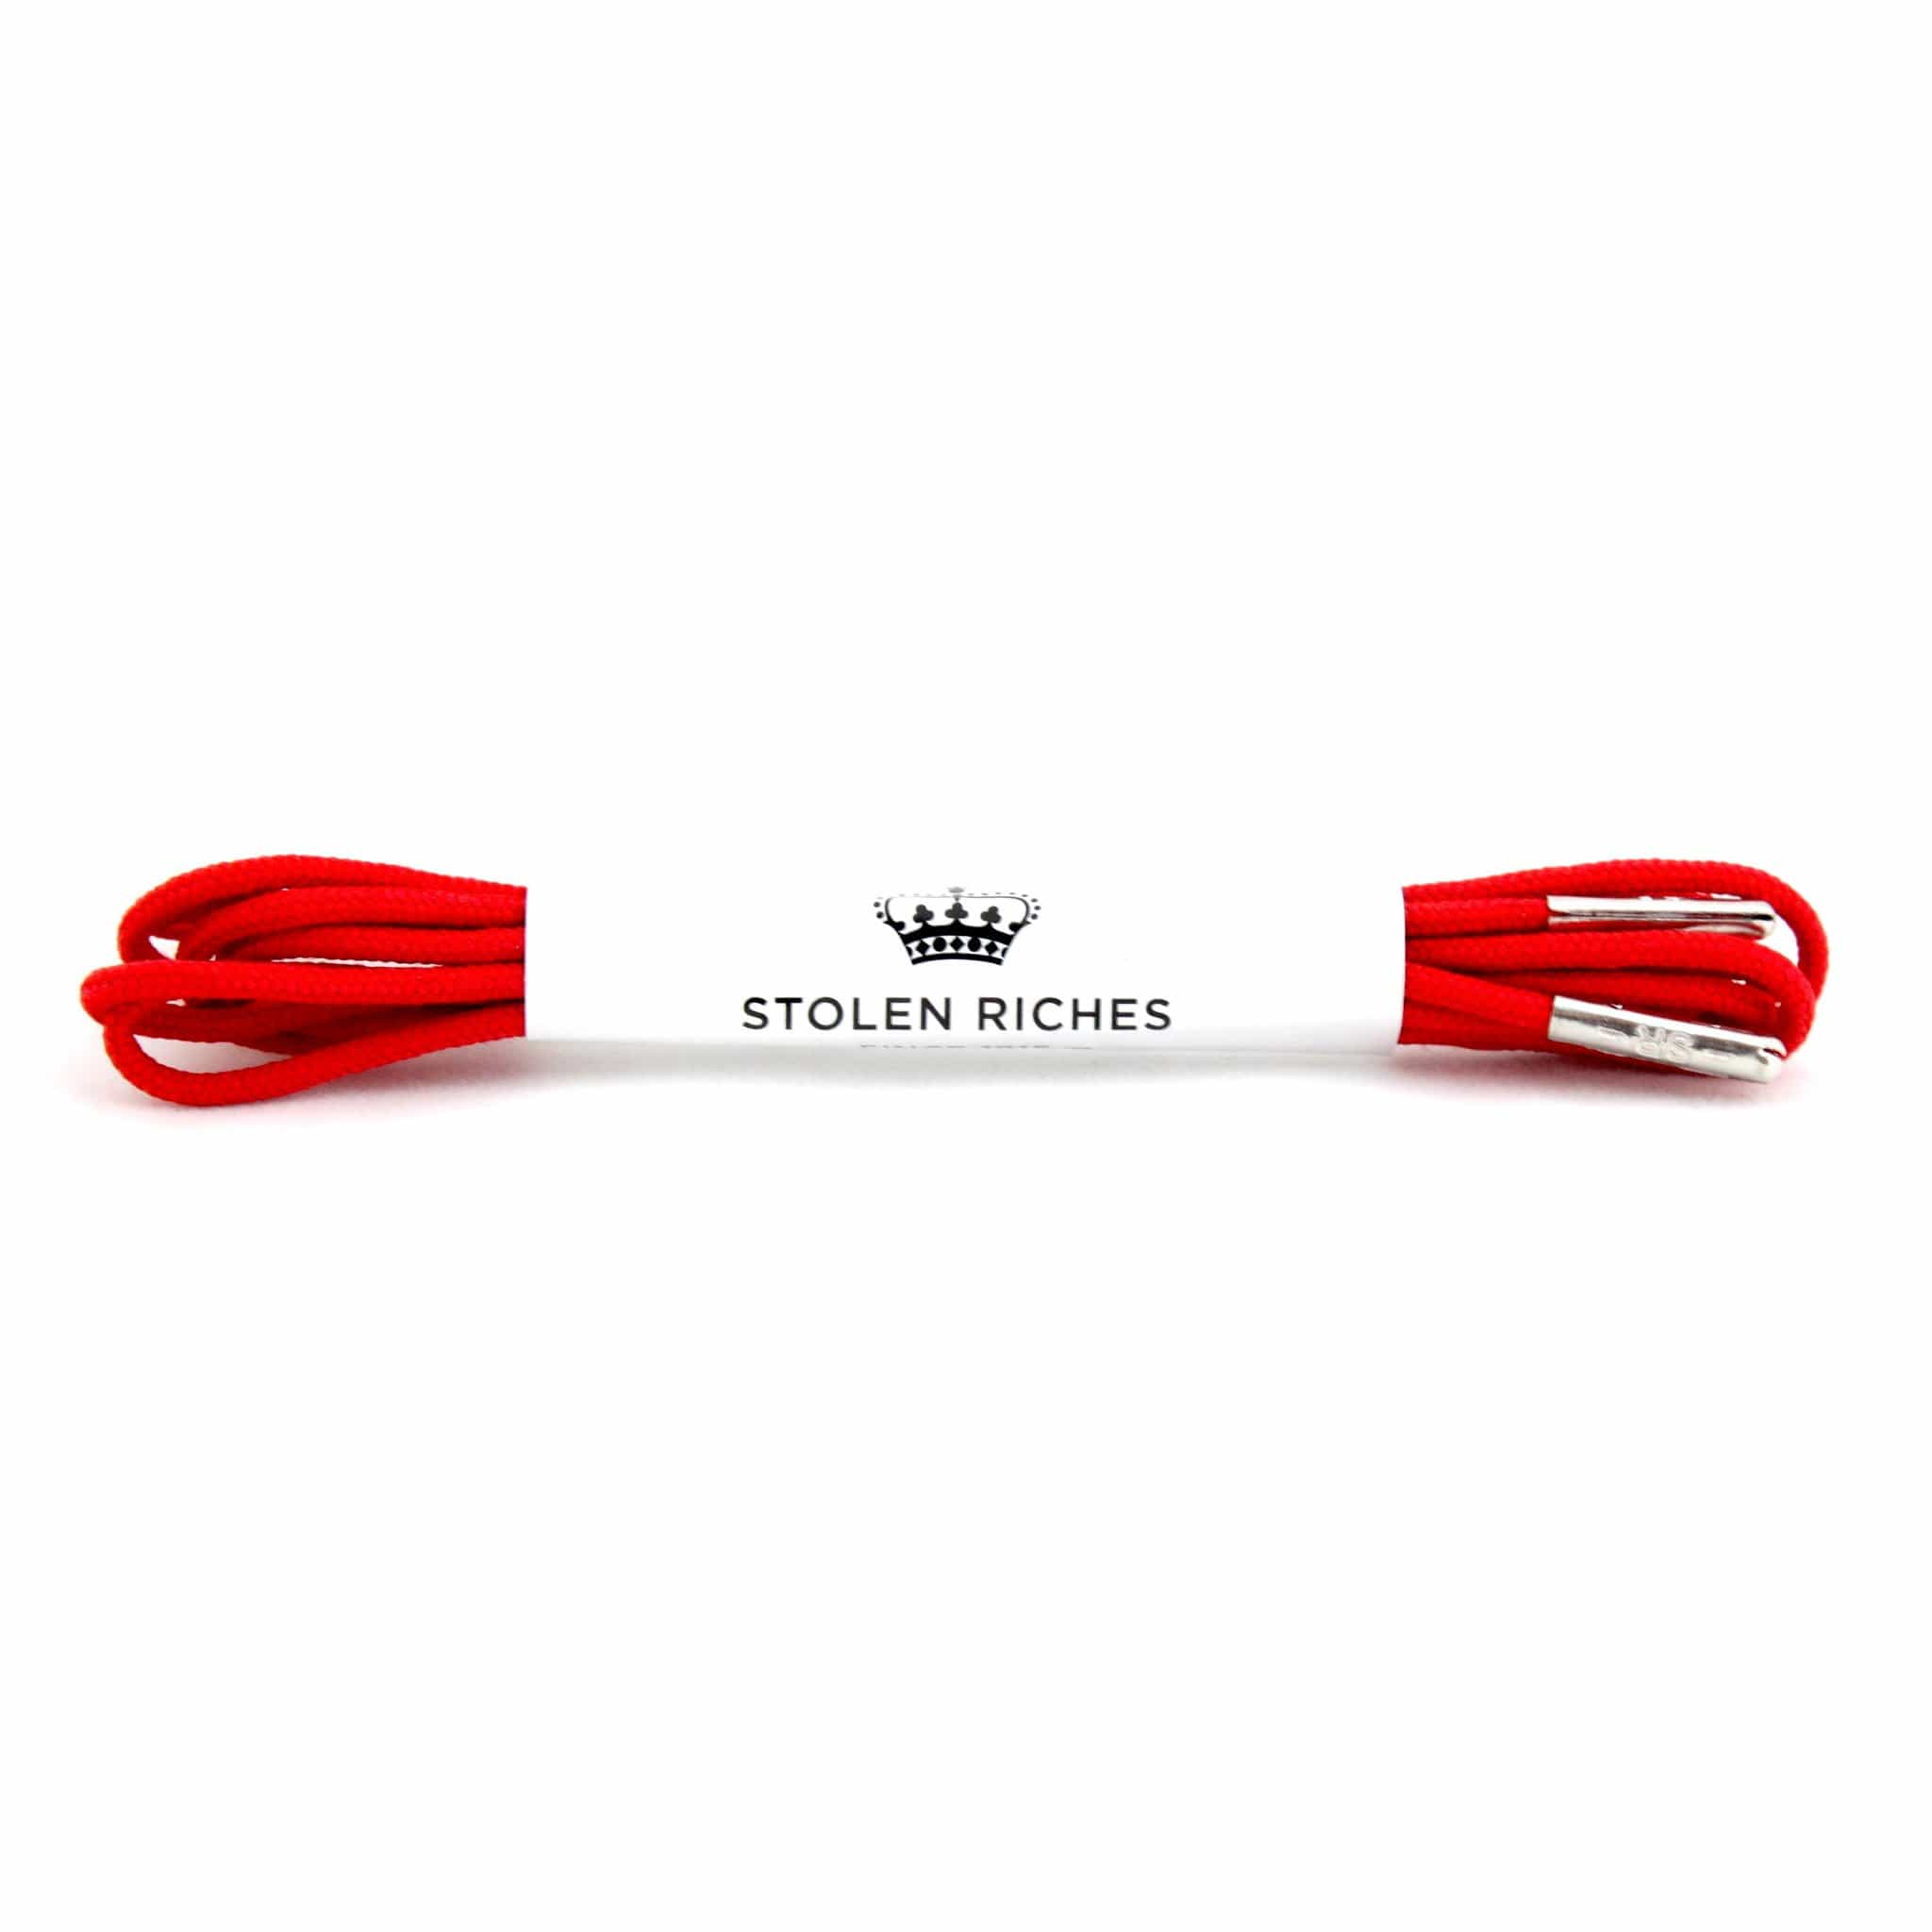 "Bright red laces for dress shoes, Length: 27""/69cm-Stolen Riches"